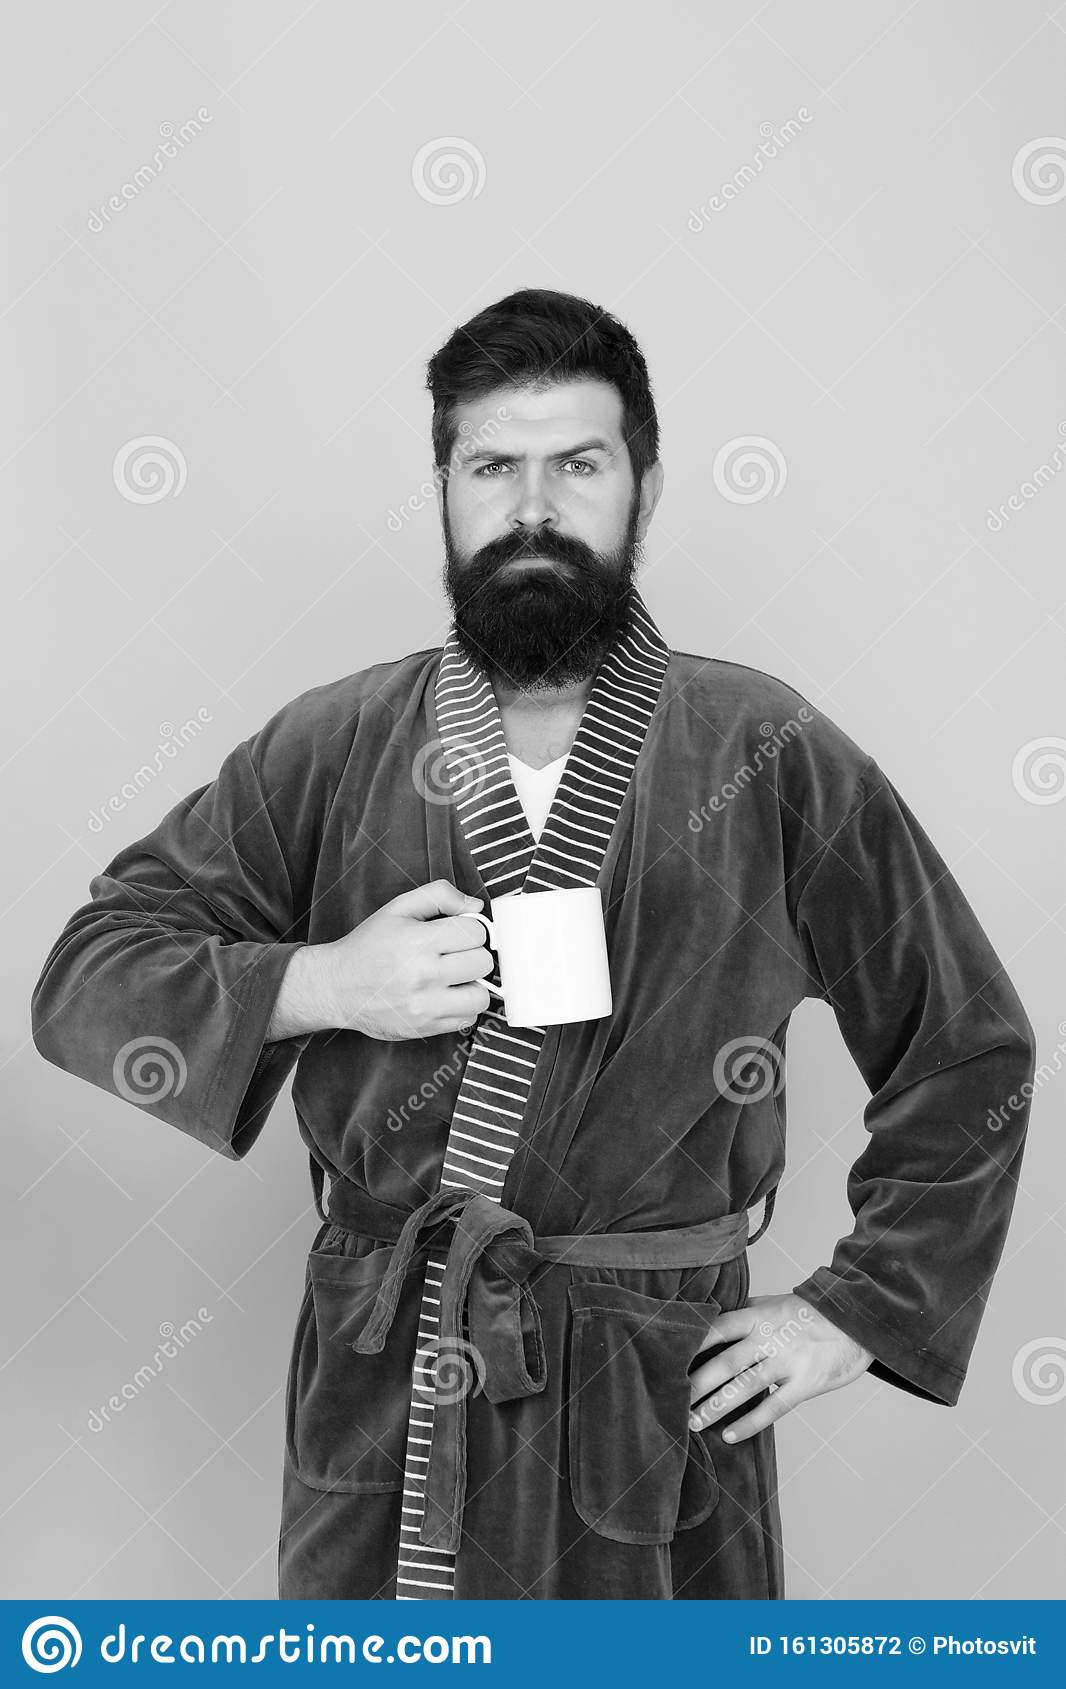 Bearded Man In Bathrobe With Mug Breakfast Concept Man With Beard In Blue Bathrobe Enjoy Morning Coffee Or Tea Guy In Stock Photo Image Of Morning Stand 161305872